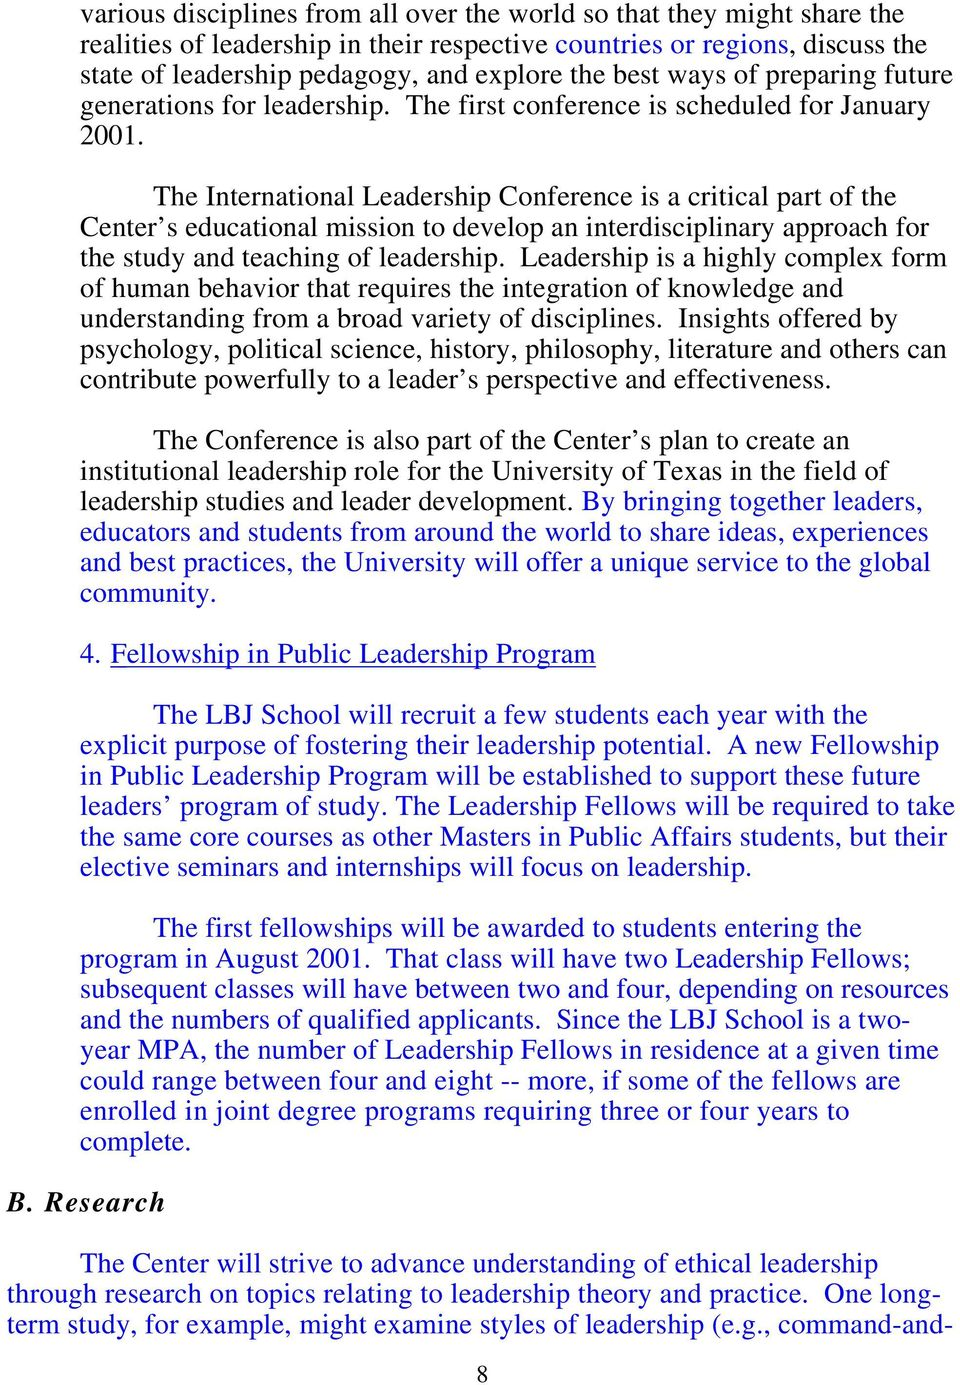 The International Leadership Conference is a critical part of the Center s educational mission to develop an interdisciplinary approach for the study and teaching of leadership.